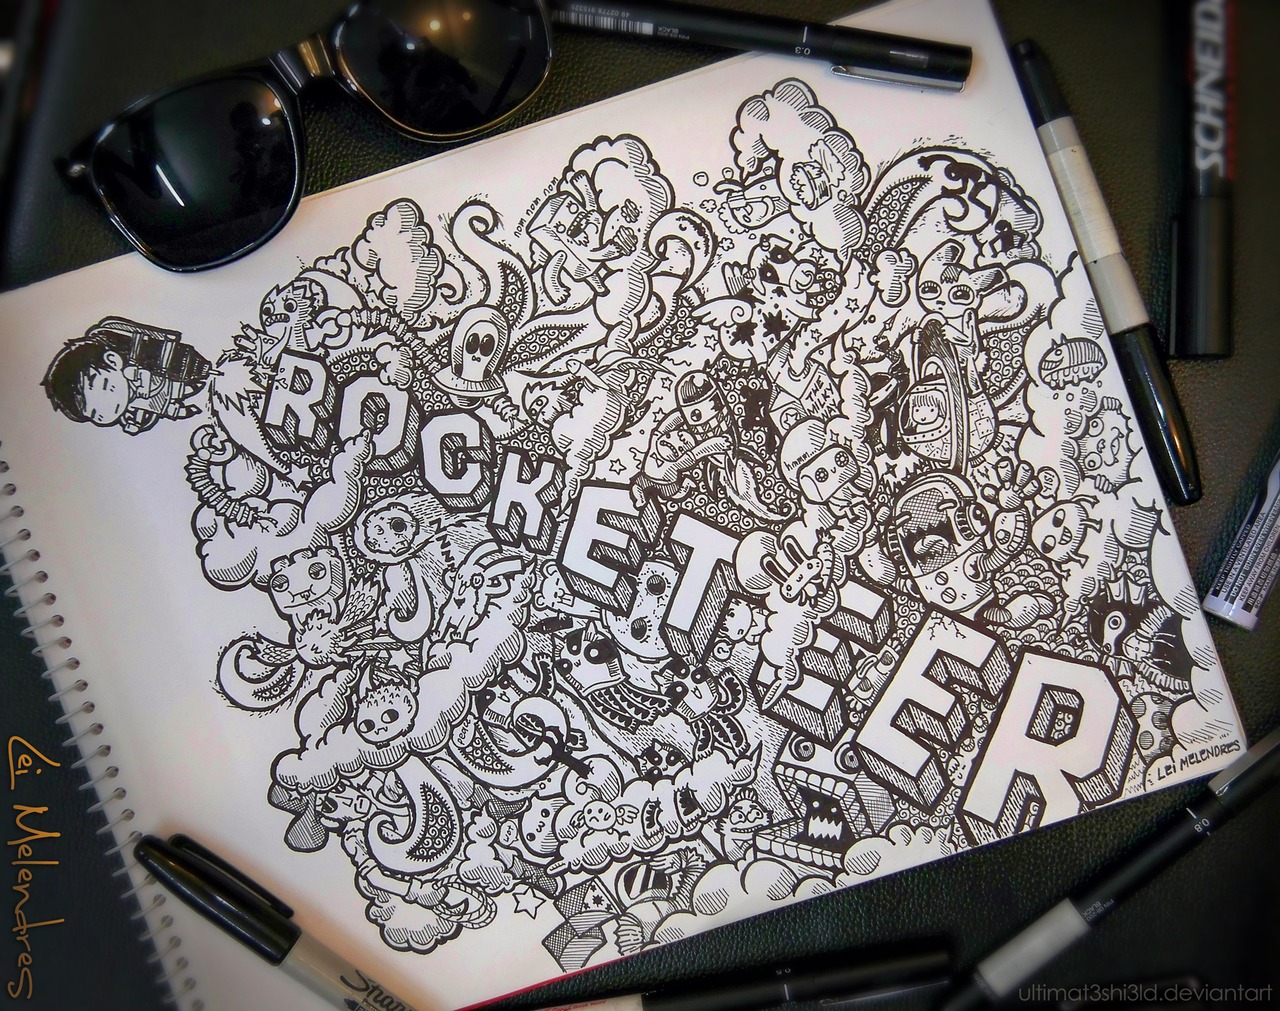 20-Im-a-Rocketeer-Lei-Melendres-Leight-Infinity-Mix-Doodles-www-designstack-co